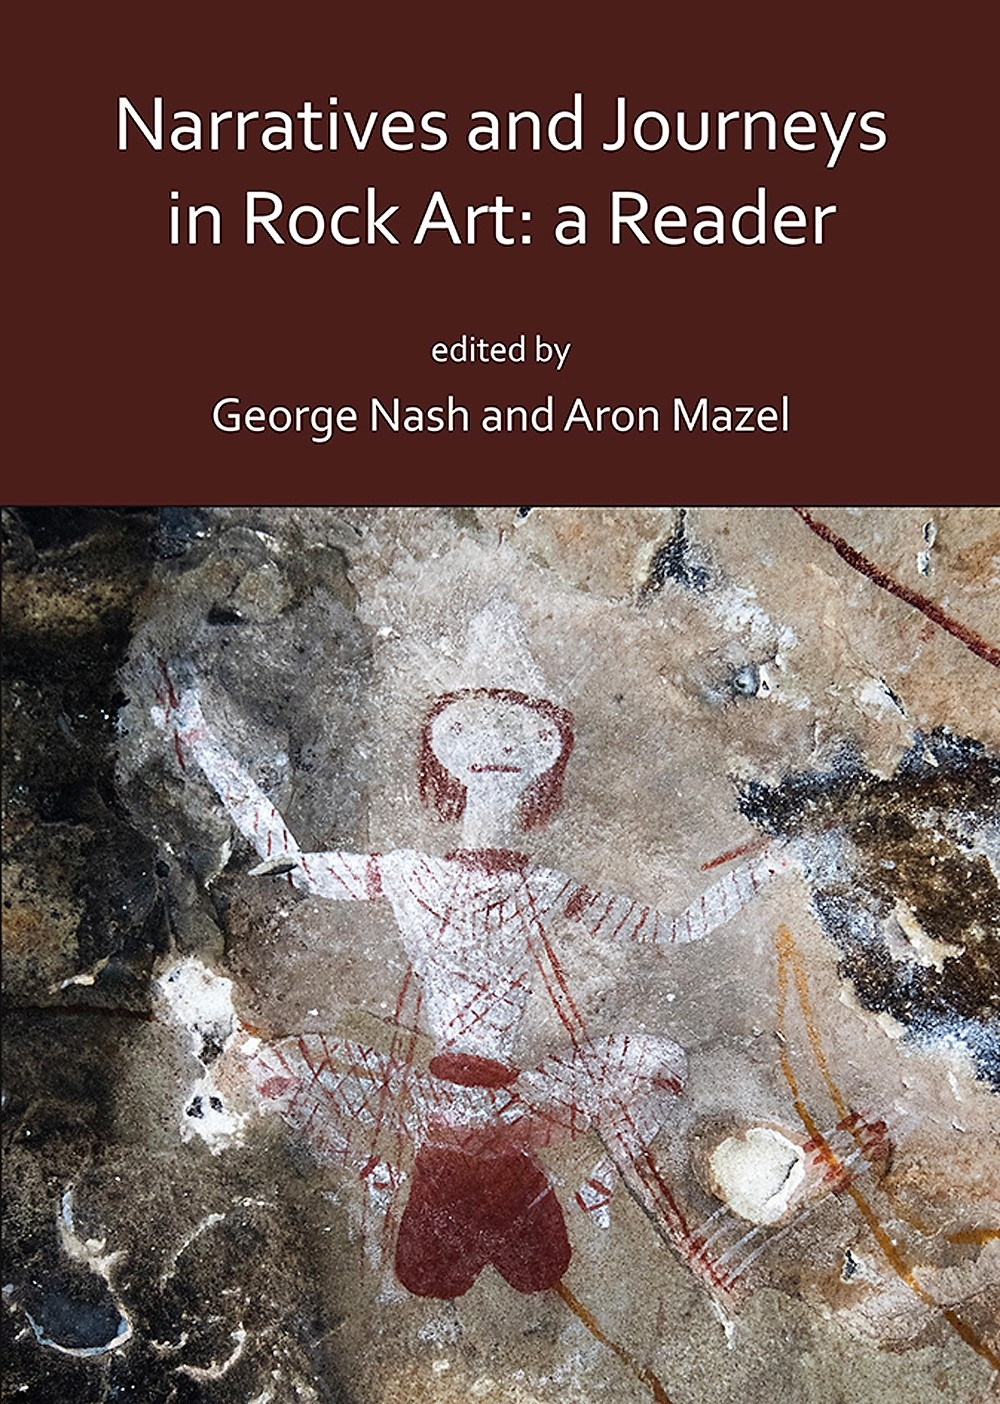 Narratives and Journeys in Rock Art: A Reader edited by George Nash and Aron Mazel